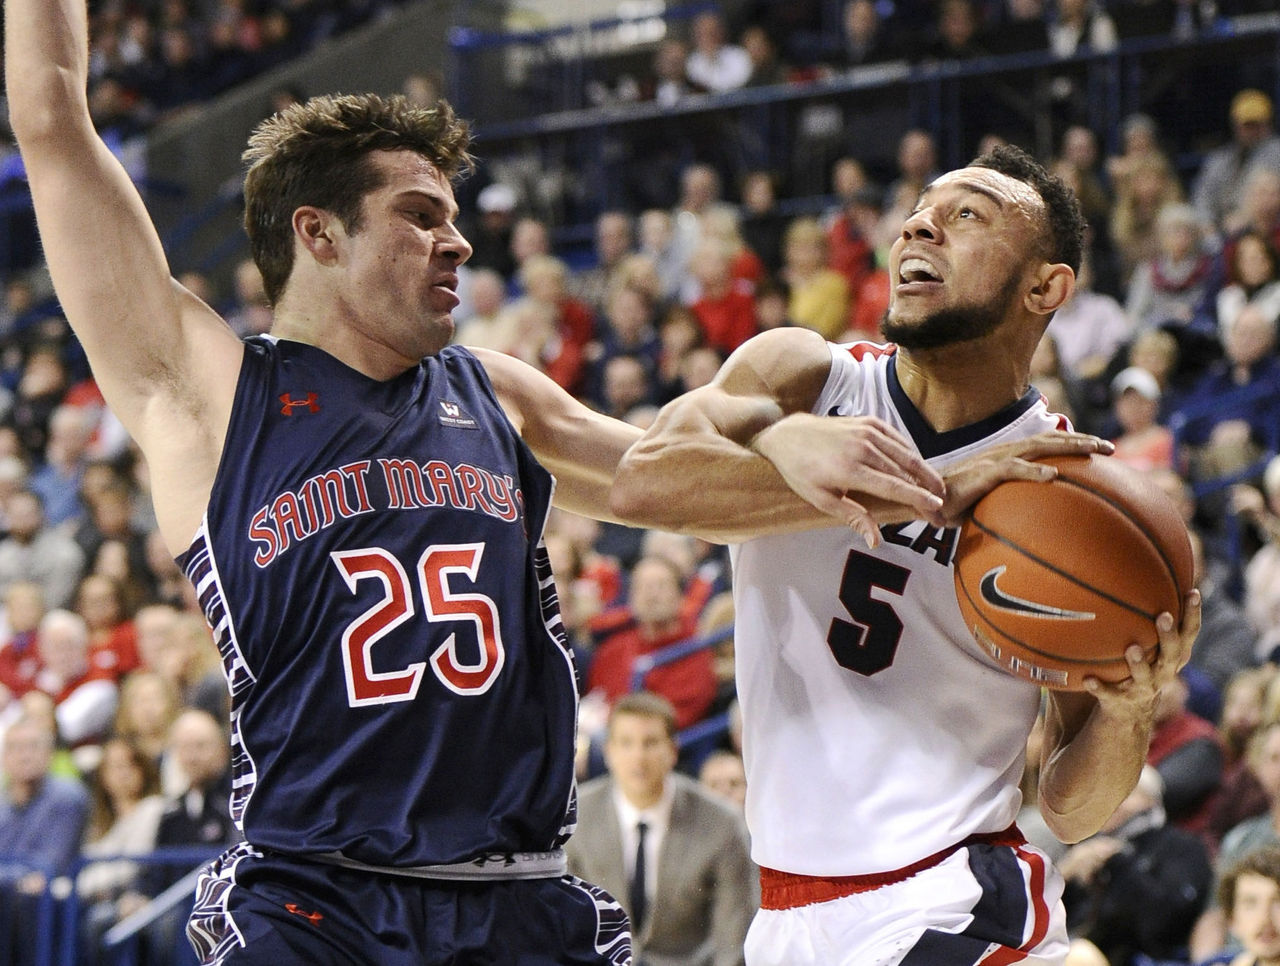 Cropped_2017-01-15t035557z_598946612_nocid_rtrmadp_3_ncaa-basketball-st-mary-s-at-gonzaga